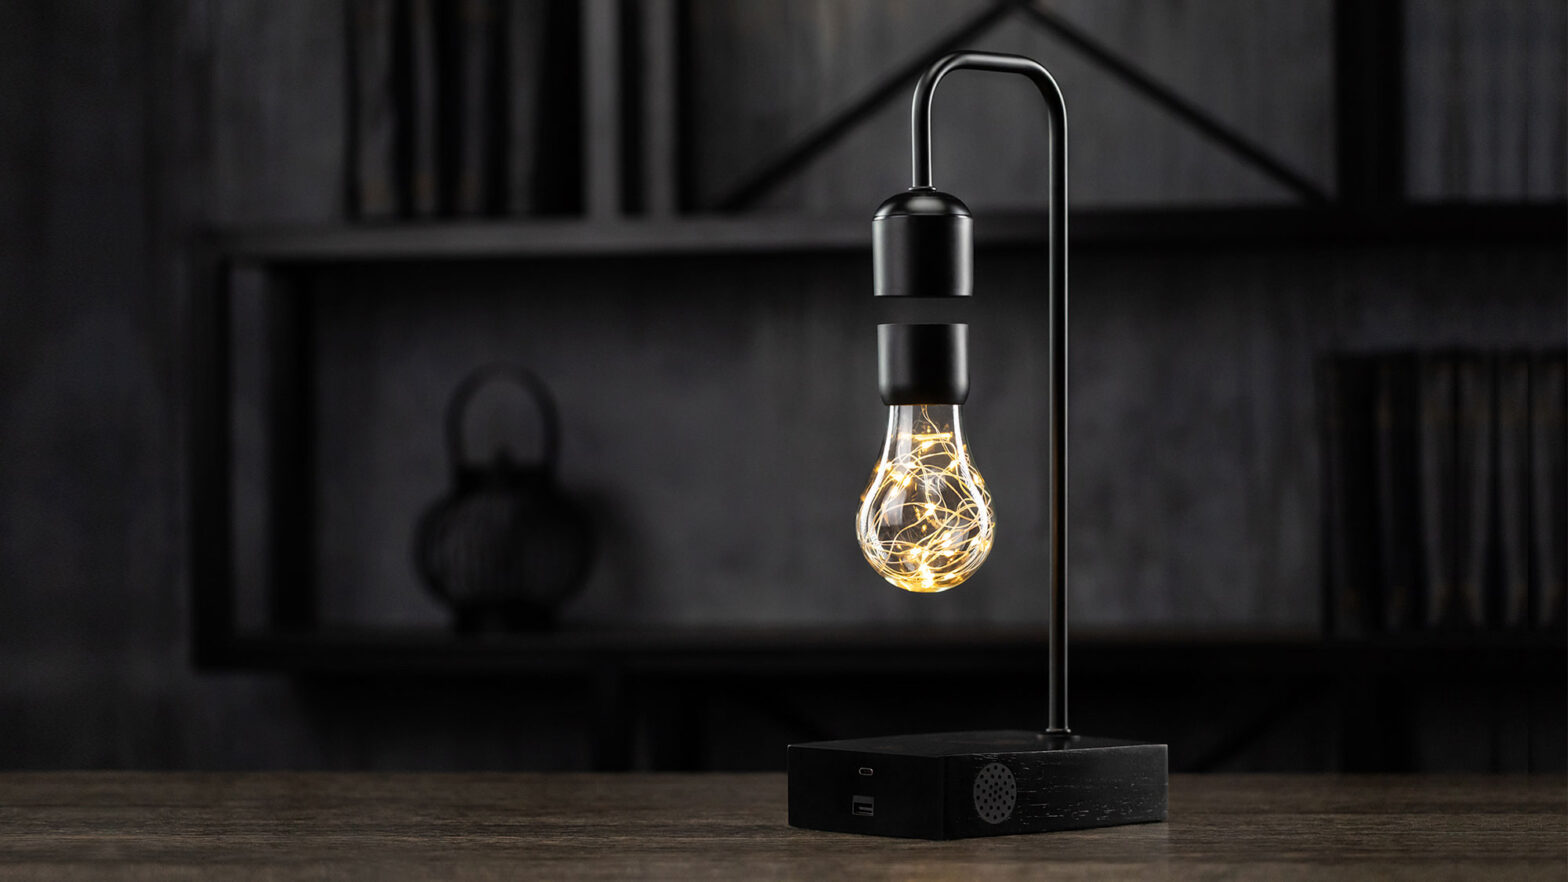 Gravita Levitating Smart Lamp by Floately